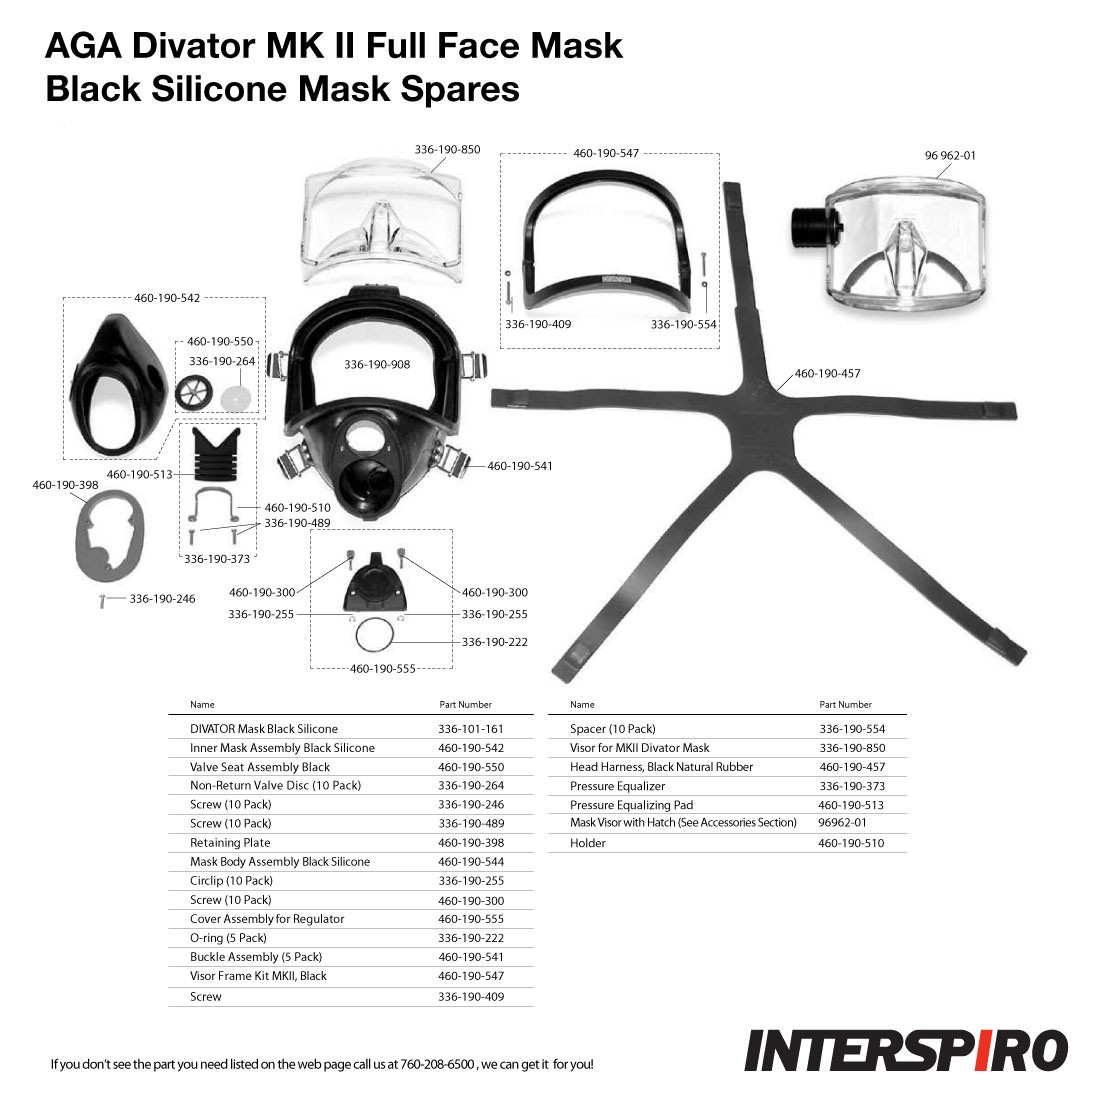 Interspiro Aga Divator Mk Ii Full Face Mask With Positive